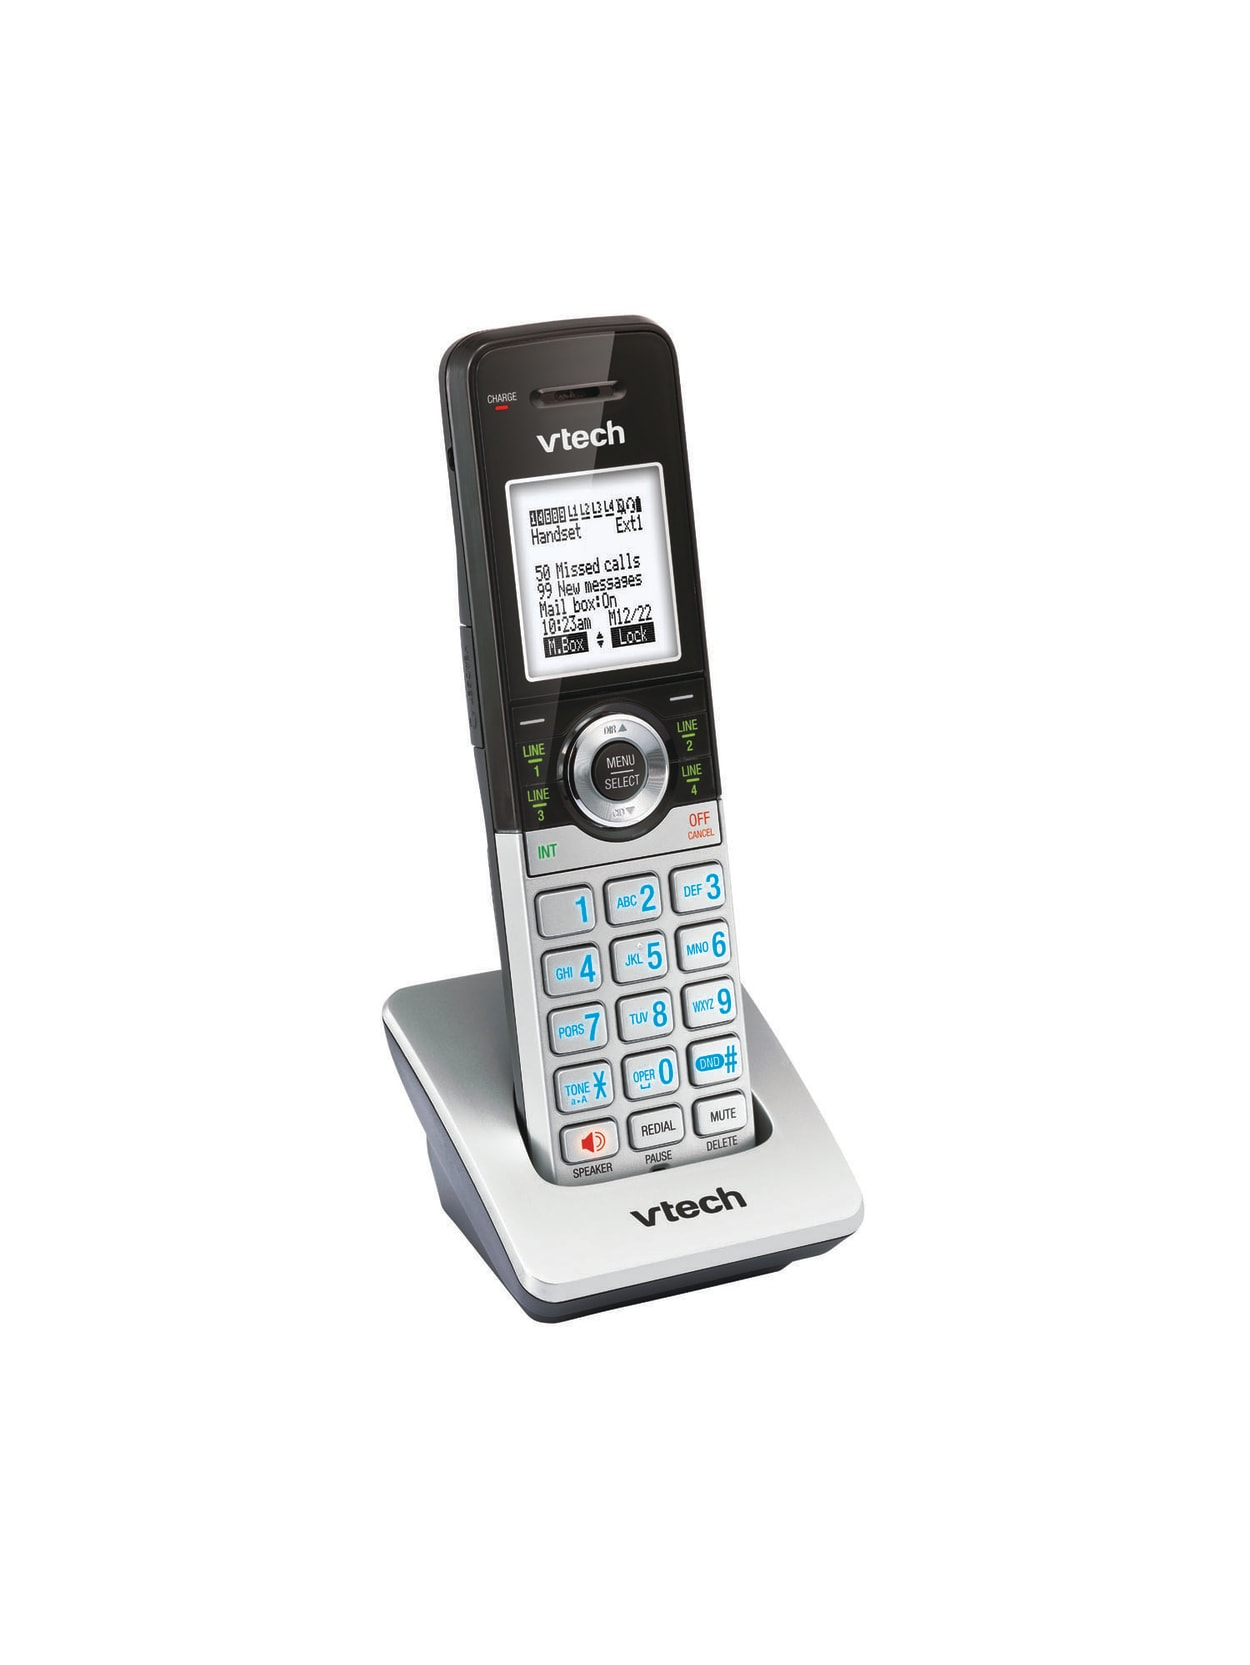 Vtech Cm18045 Cordless Expansion Handset For Vtech Cm184455 Small Business Office Phone Systems Office Depot